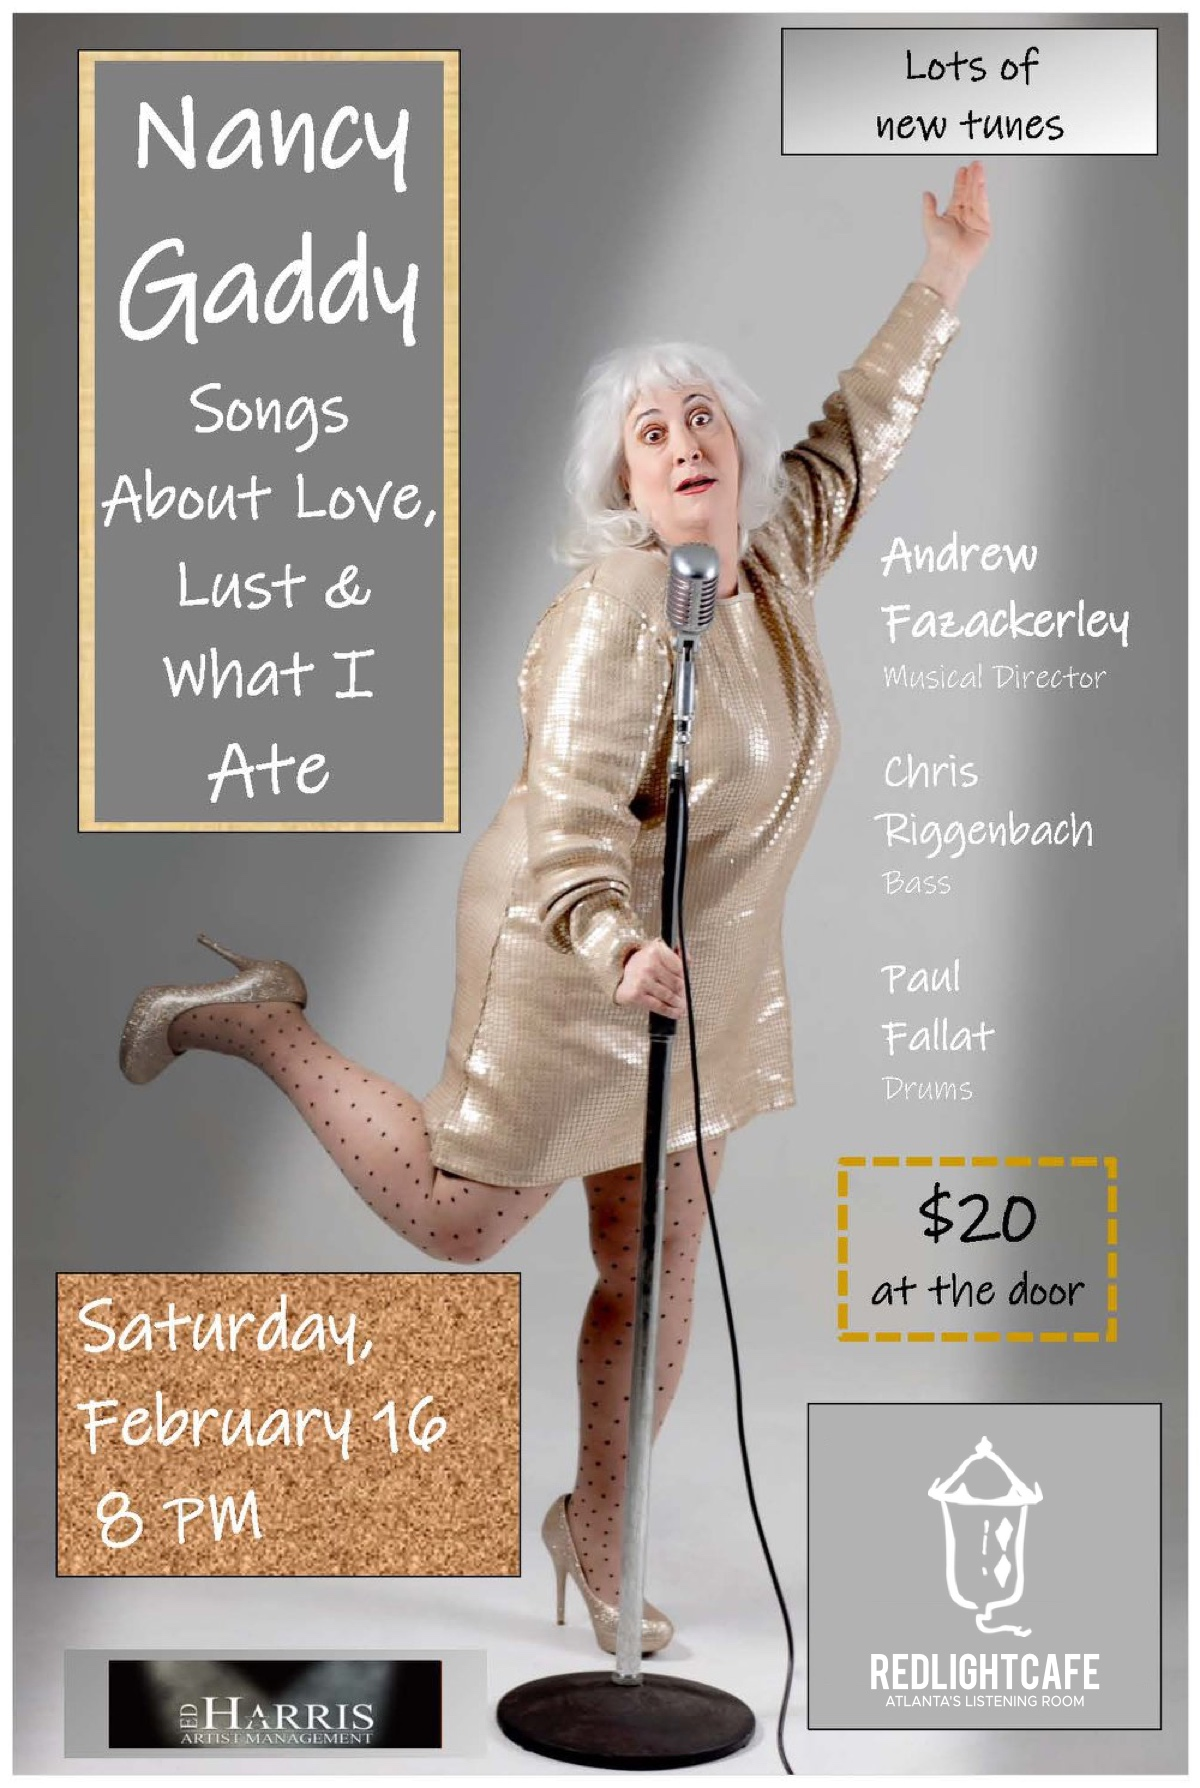 An Evening with Nancy Gaddy: Songs About Love, Lust & What I Ate — February 18, 2019 — Red Light Café, Atlanta, GA